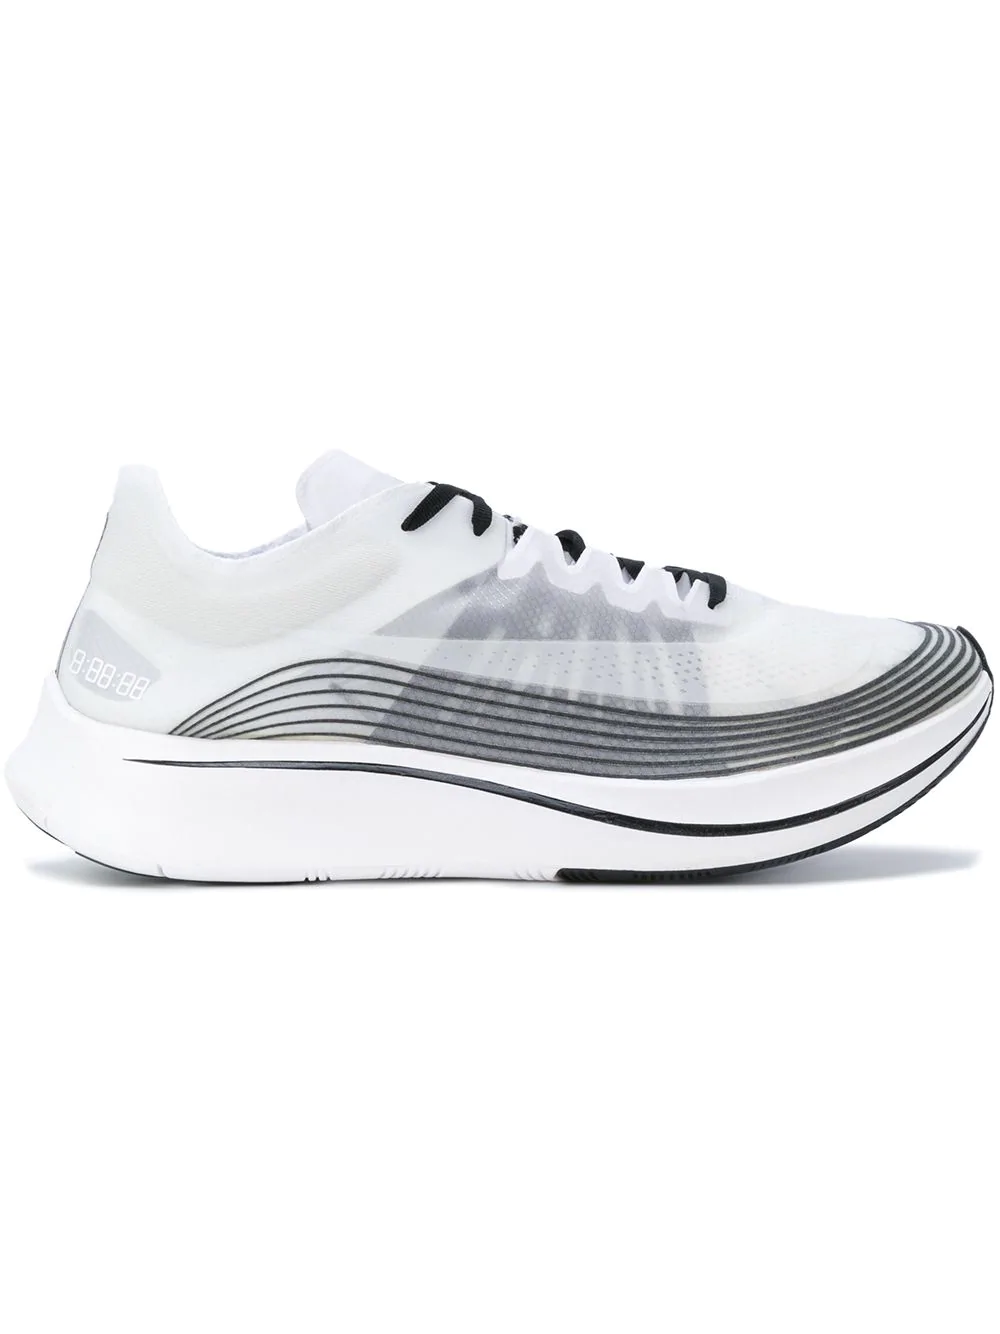 d4d5c659a92df Nike Lab Zoom Fly Sp Sneakers - White. Farfetch